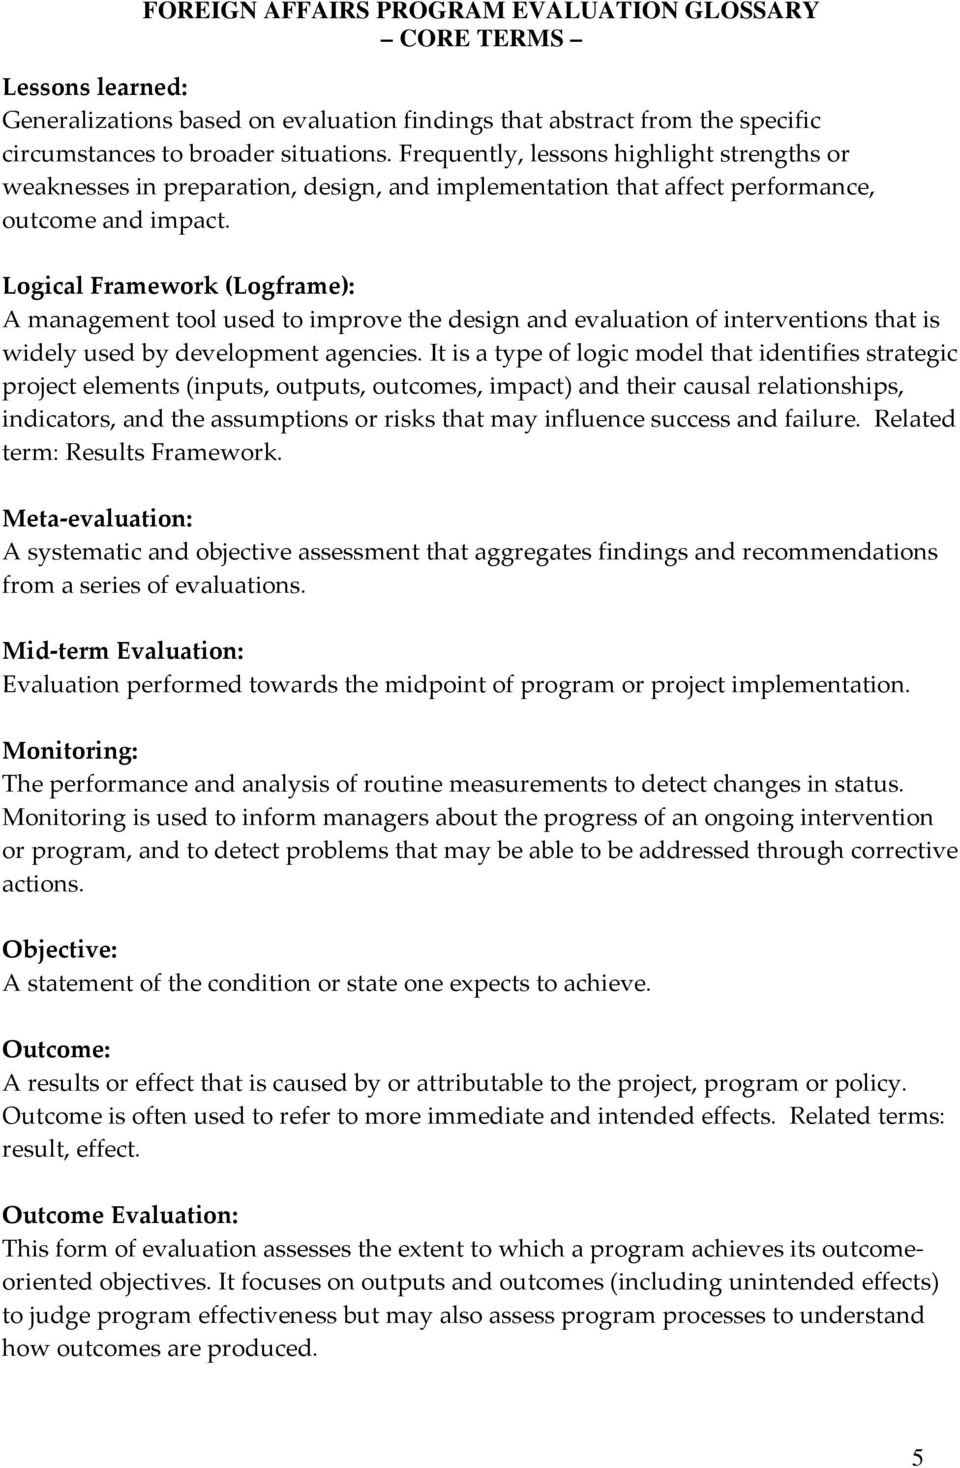 Logical Framework (Logframe): A management tool used to improve the design and evaluation of interventions that is widely used by development agencies.